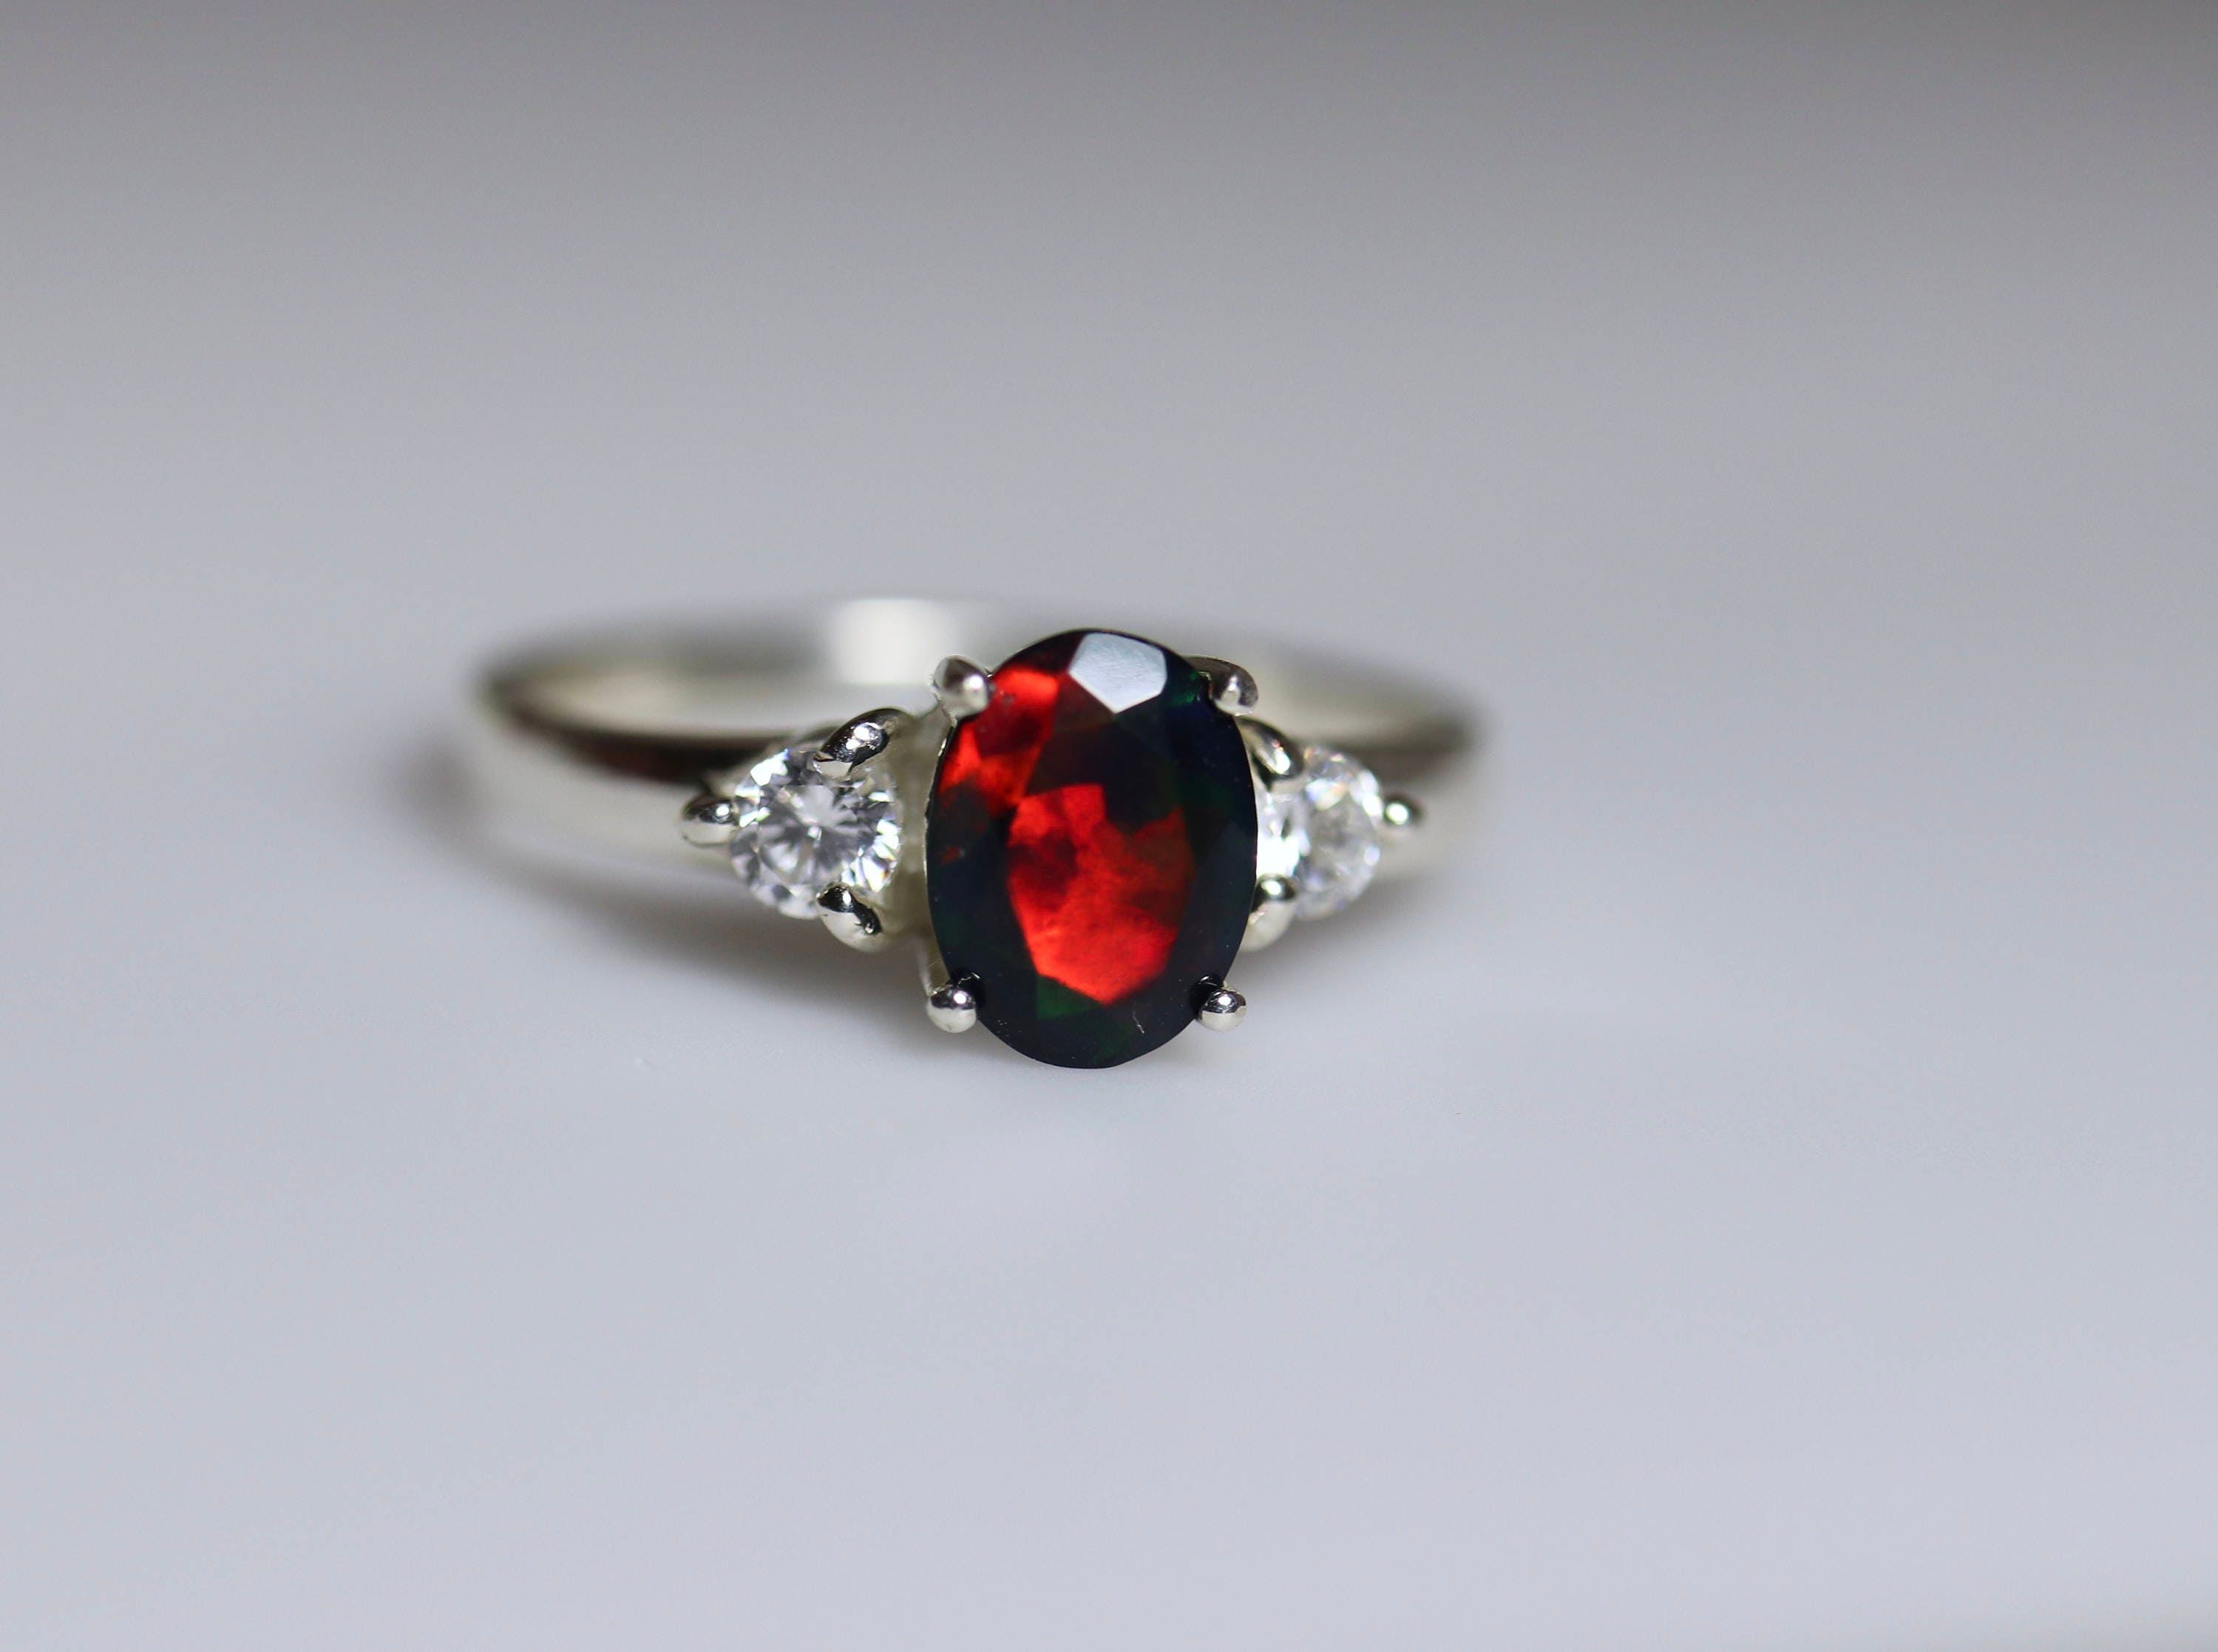 black opal engagement ring cz accented delicate ring. Black Bedroom Furniture Sets. Home Design Ideas